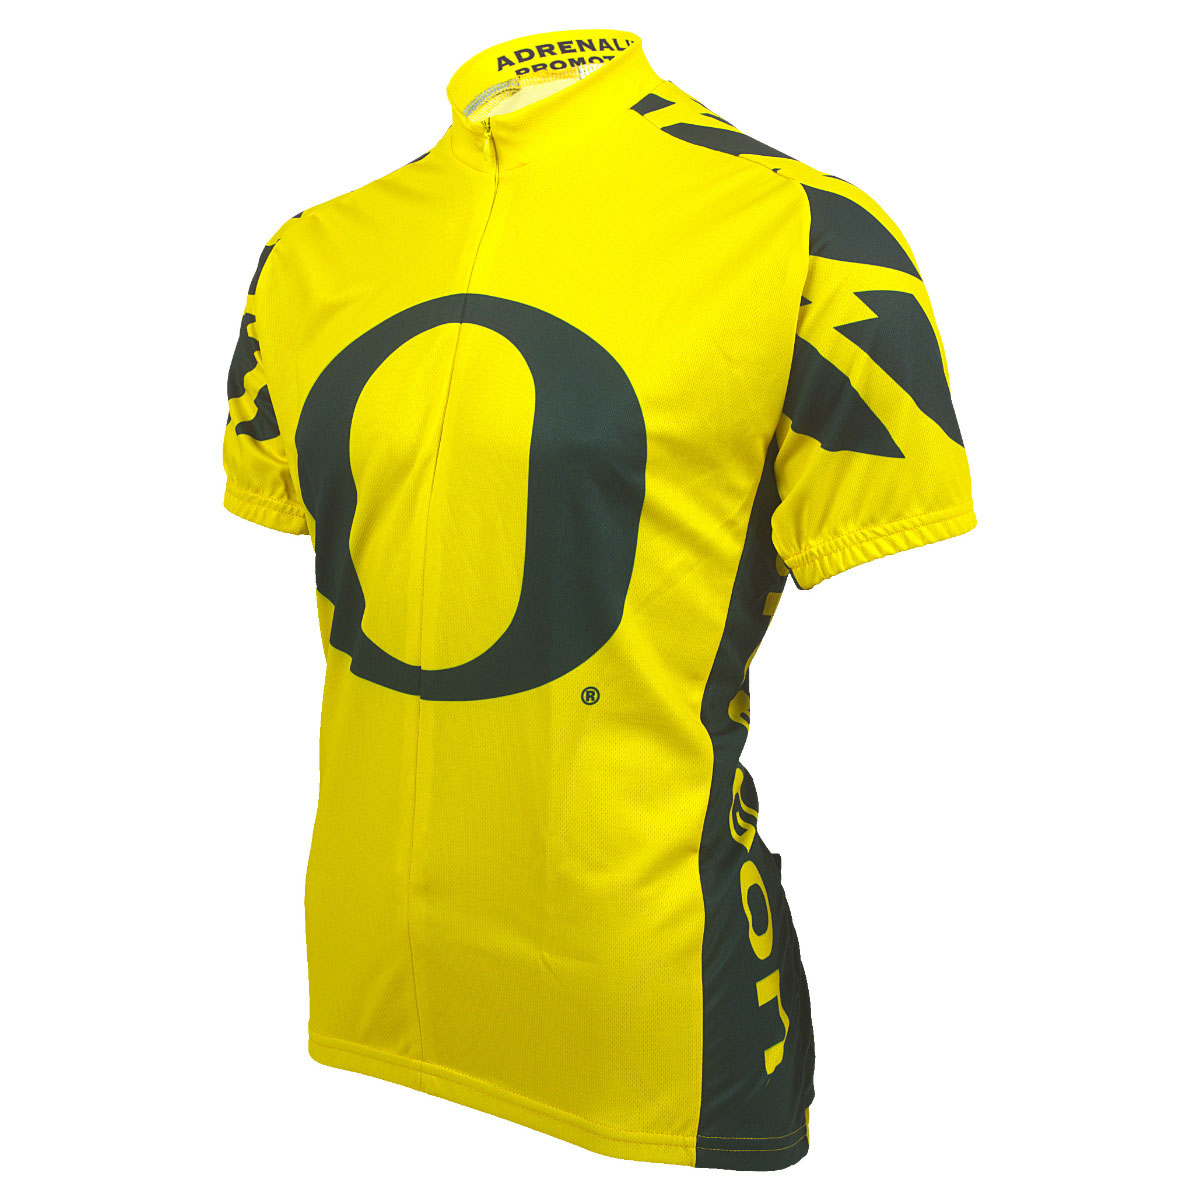 Adrenaline Promotions University of Oregon Duck Cycling Jersey